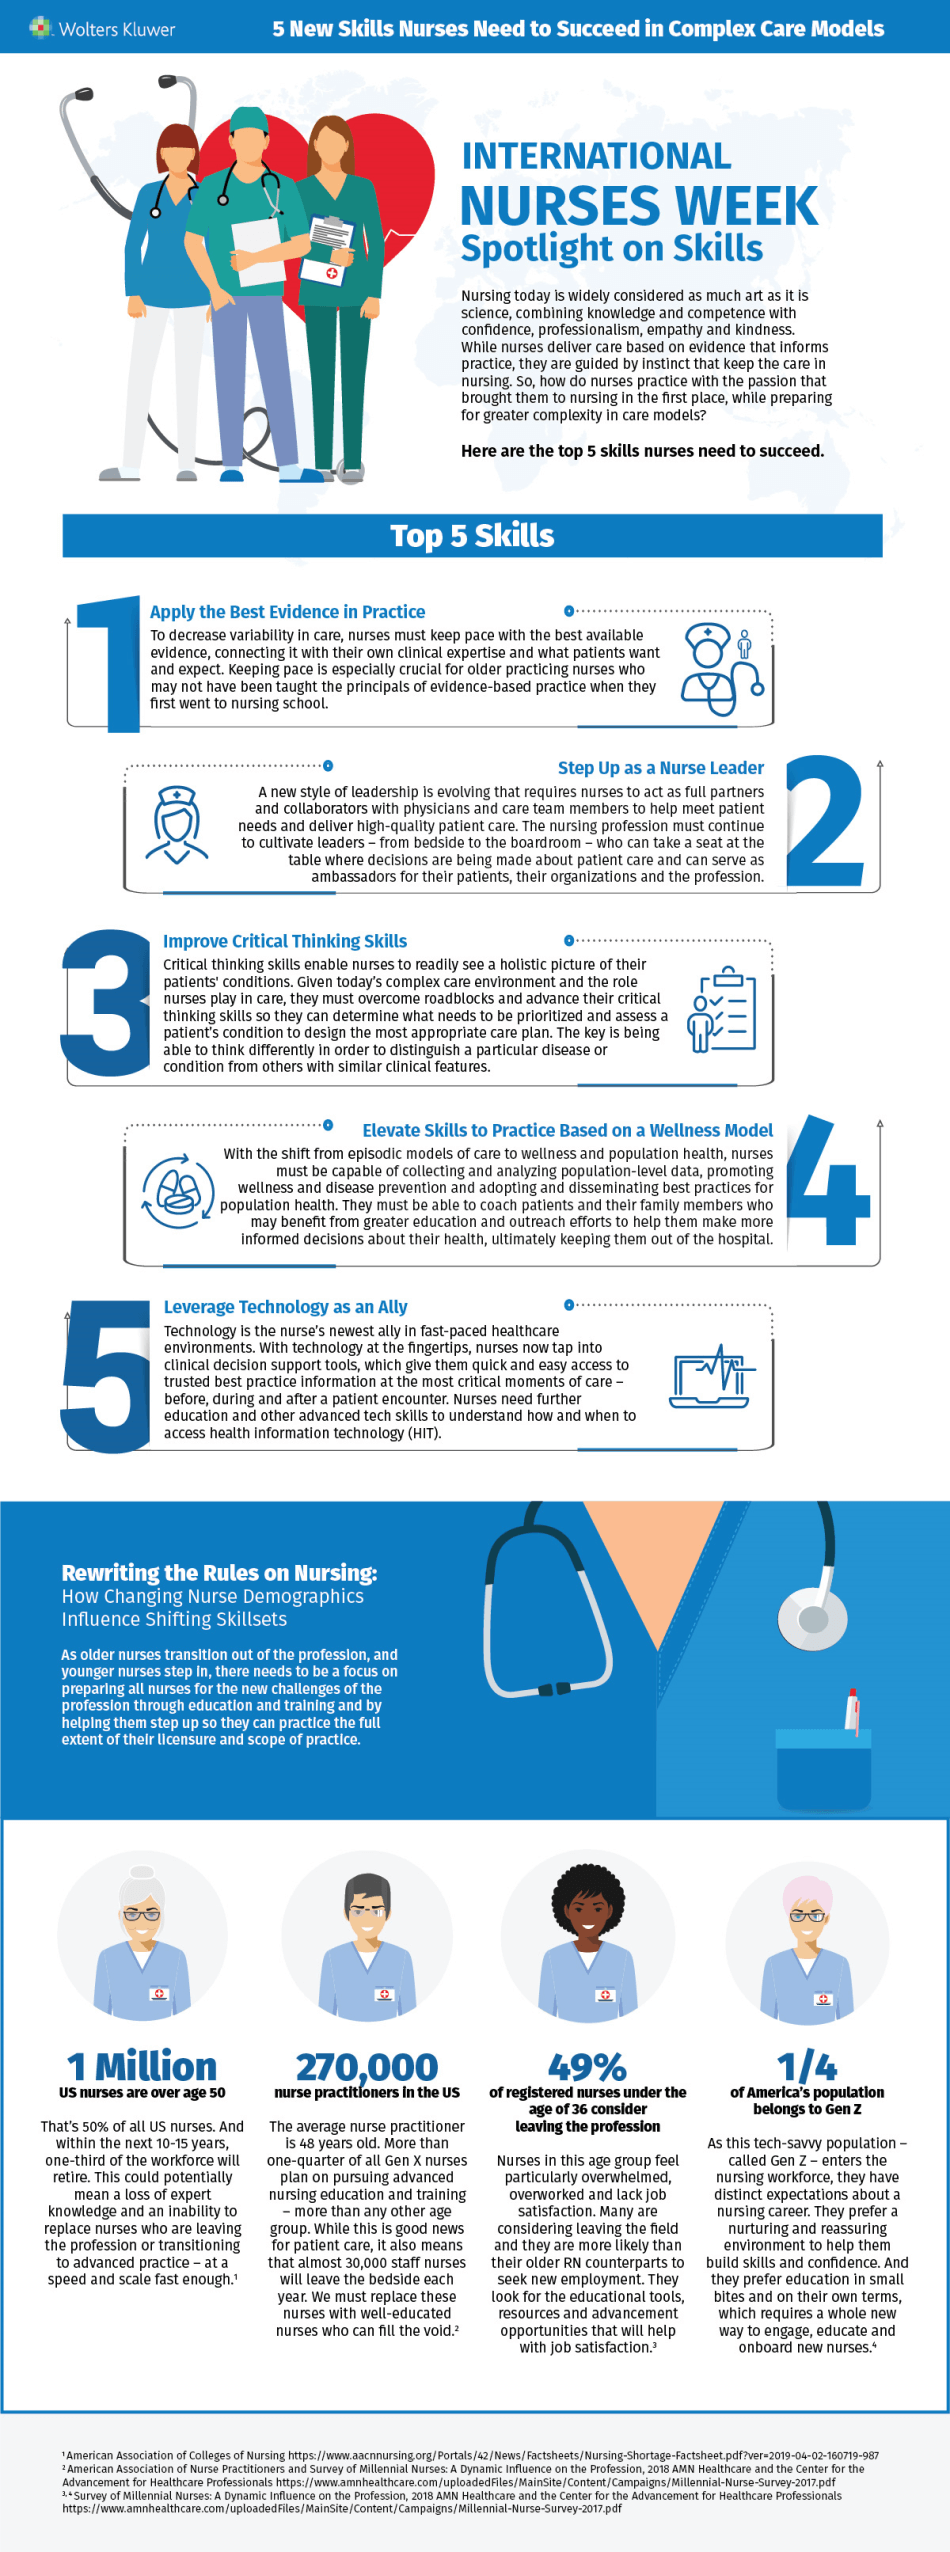 5 New Skills Nurses Need to Succeed in Complex Care Models